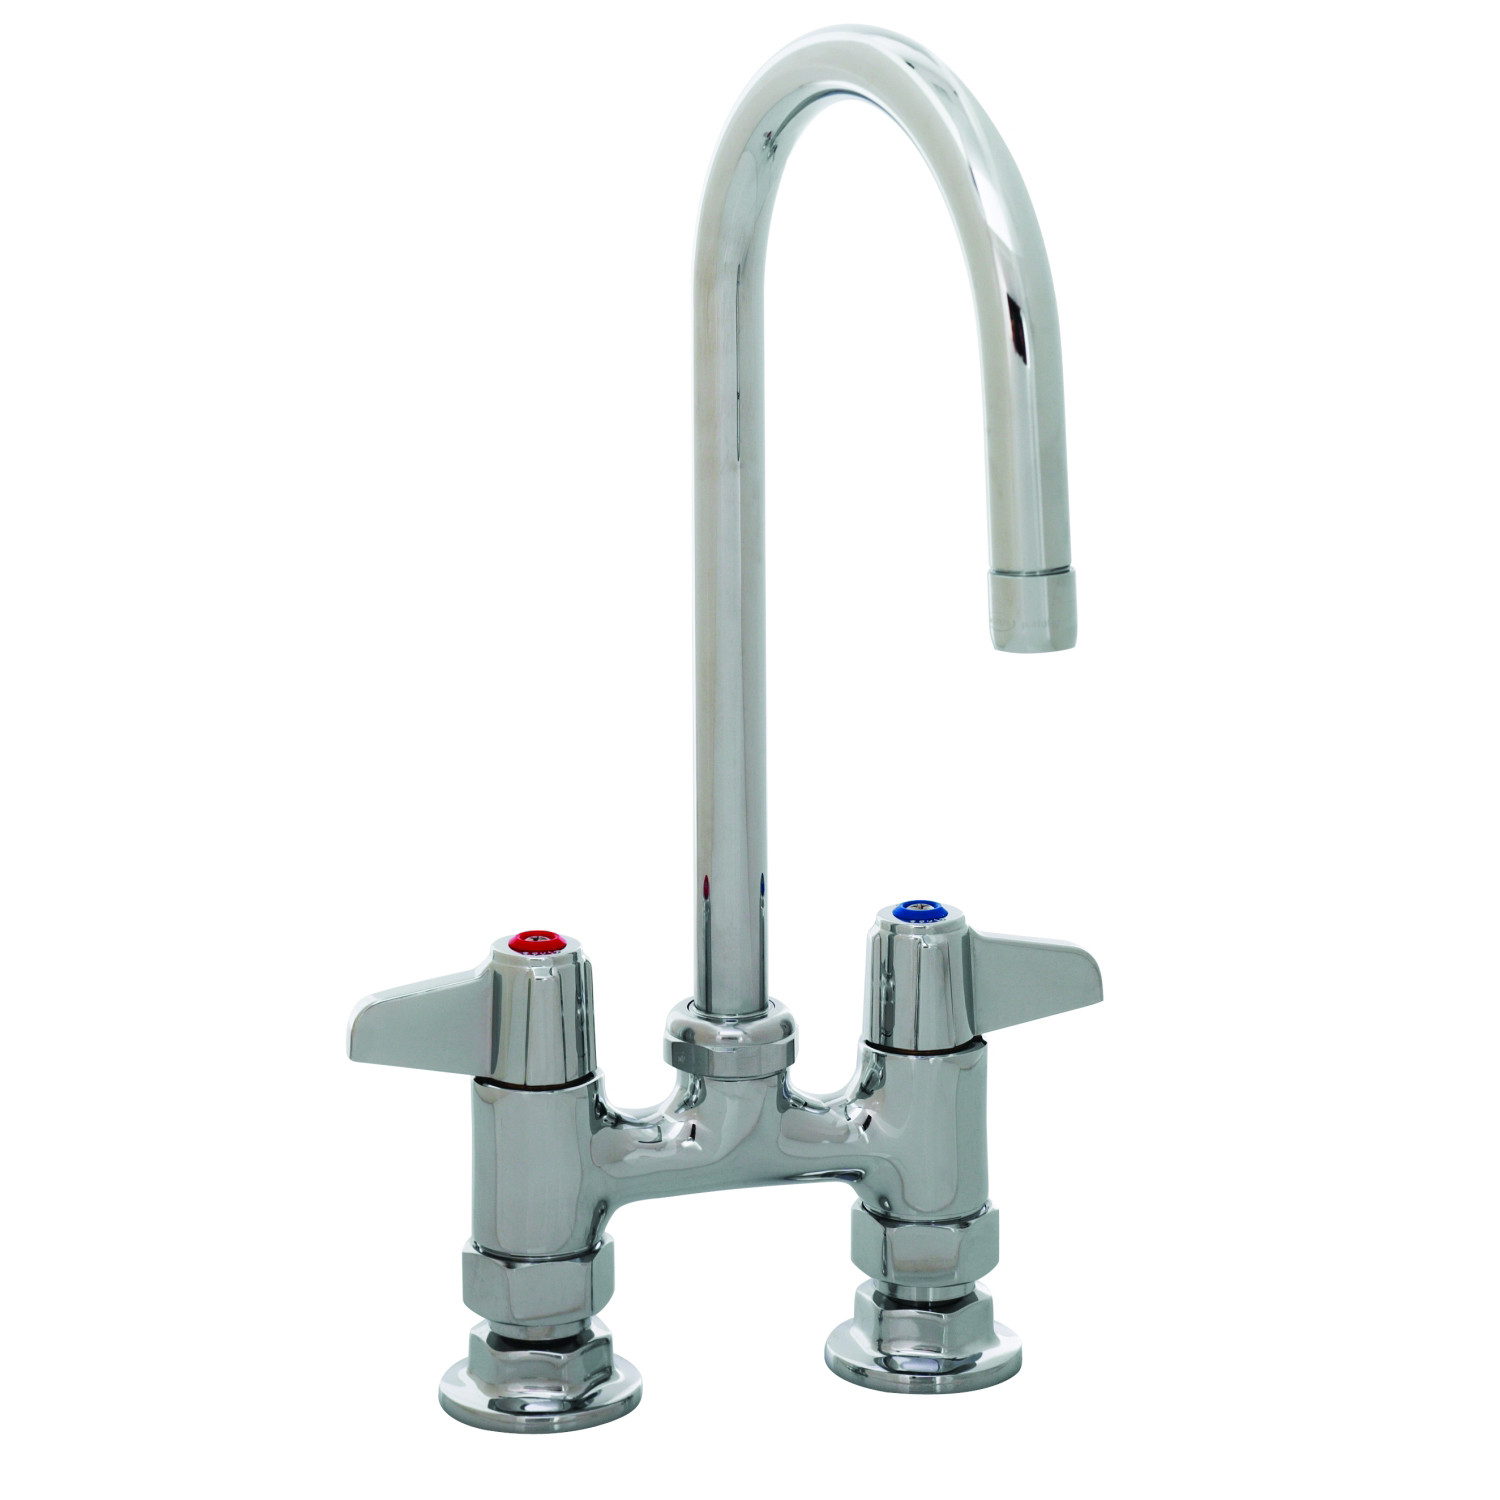 faucet b faucets adapter swivel brass t dishwashers amazon rigid dp com to s